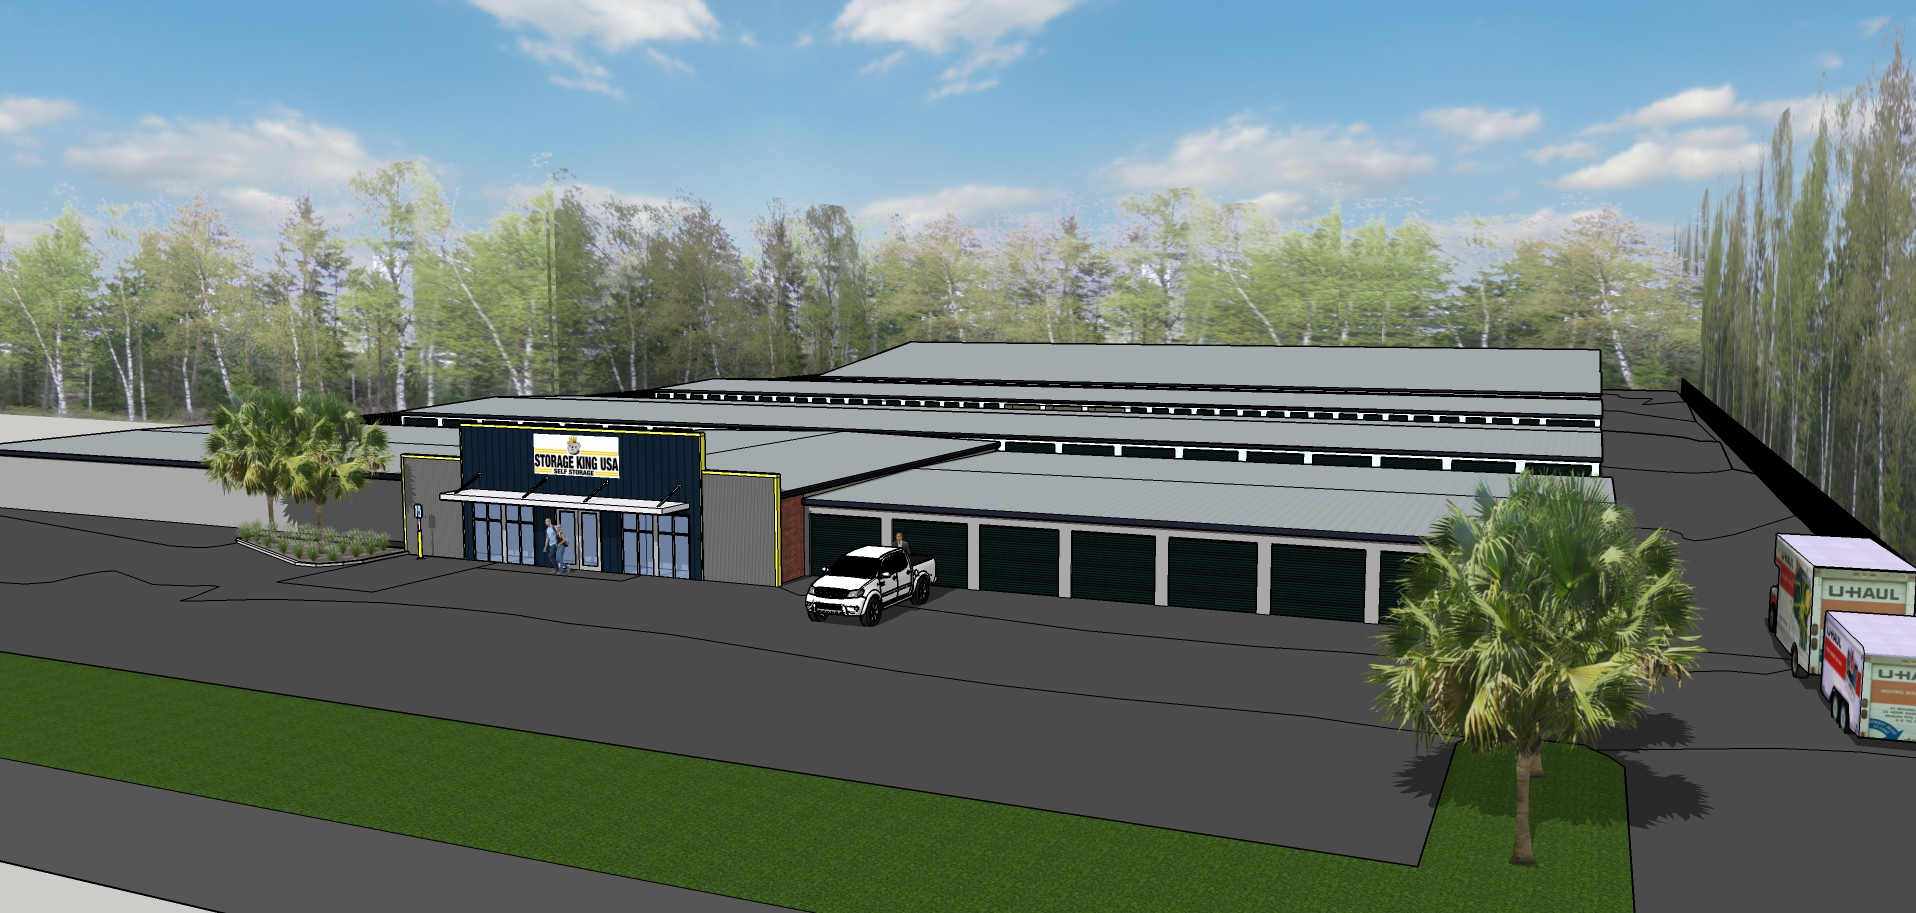 Summerville, SC – 35,000 square foot expansion planned